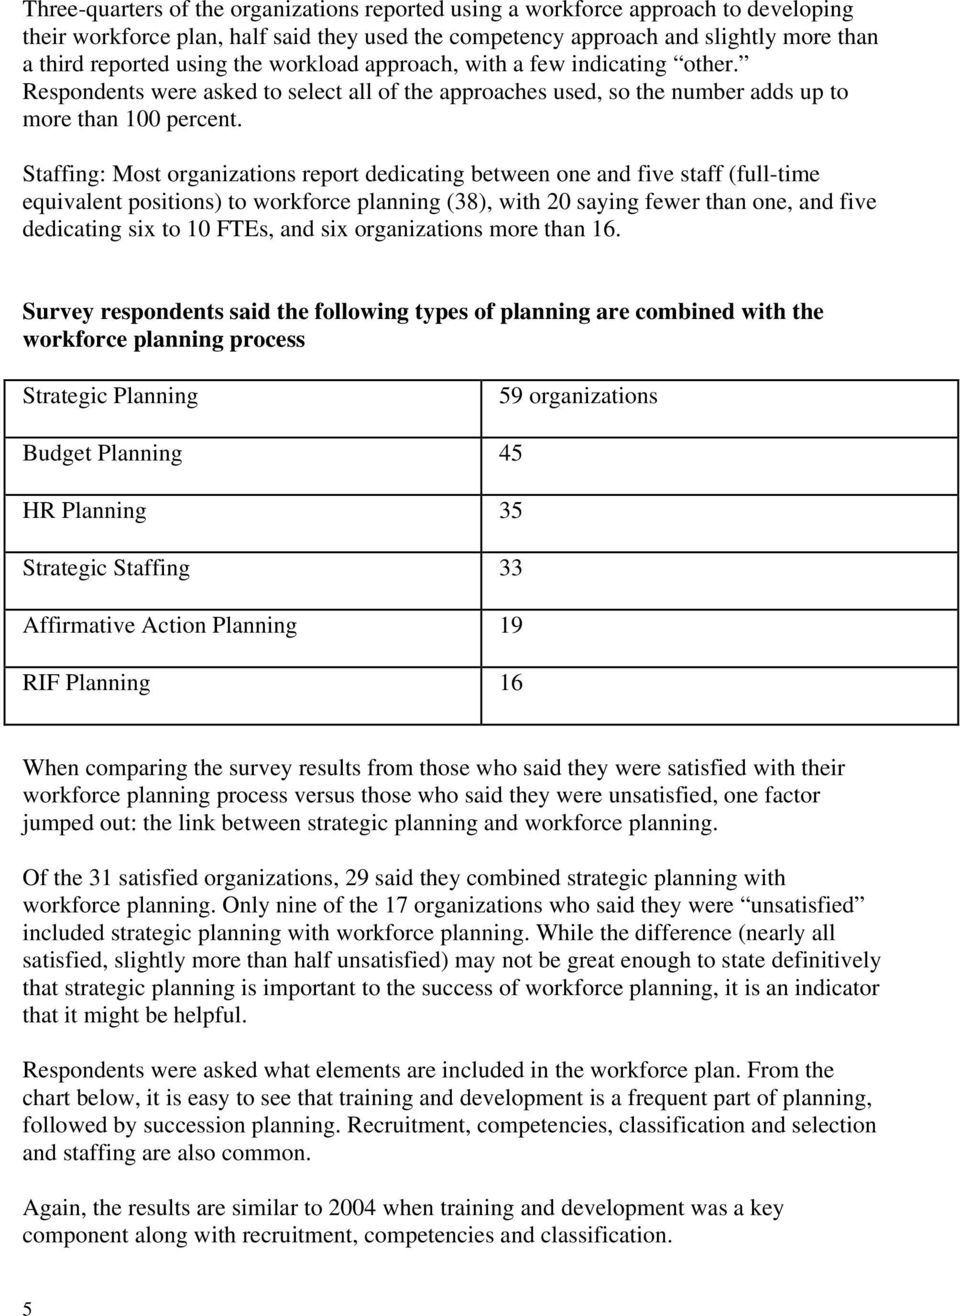 Staffing: Most organizations report dedicating between one and five staff (full-time equivalent positions) to workforce planning (38), with 20 saying fewer than one, and five dedicating six to 10